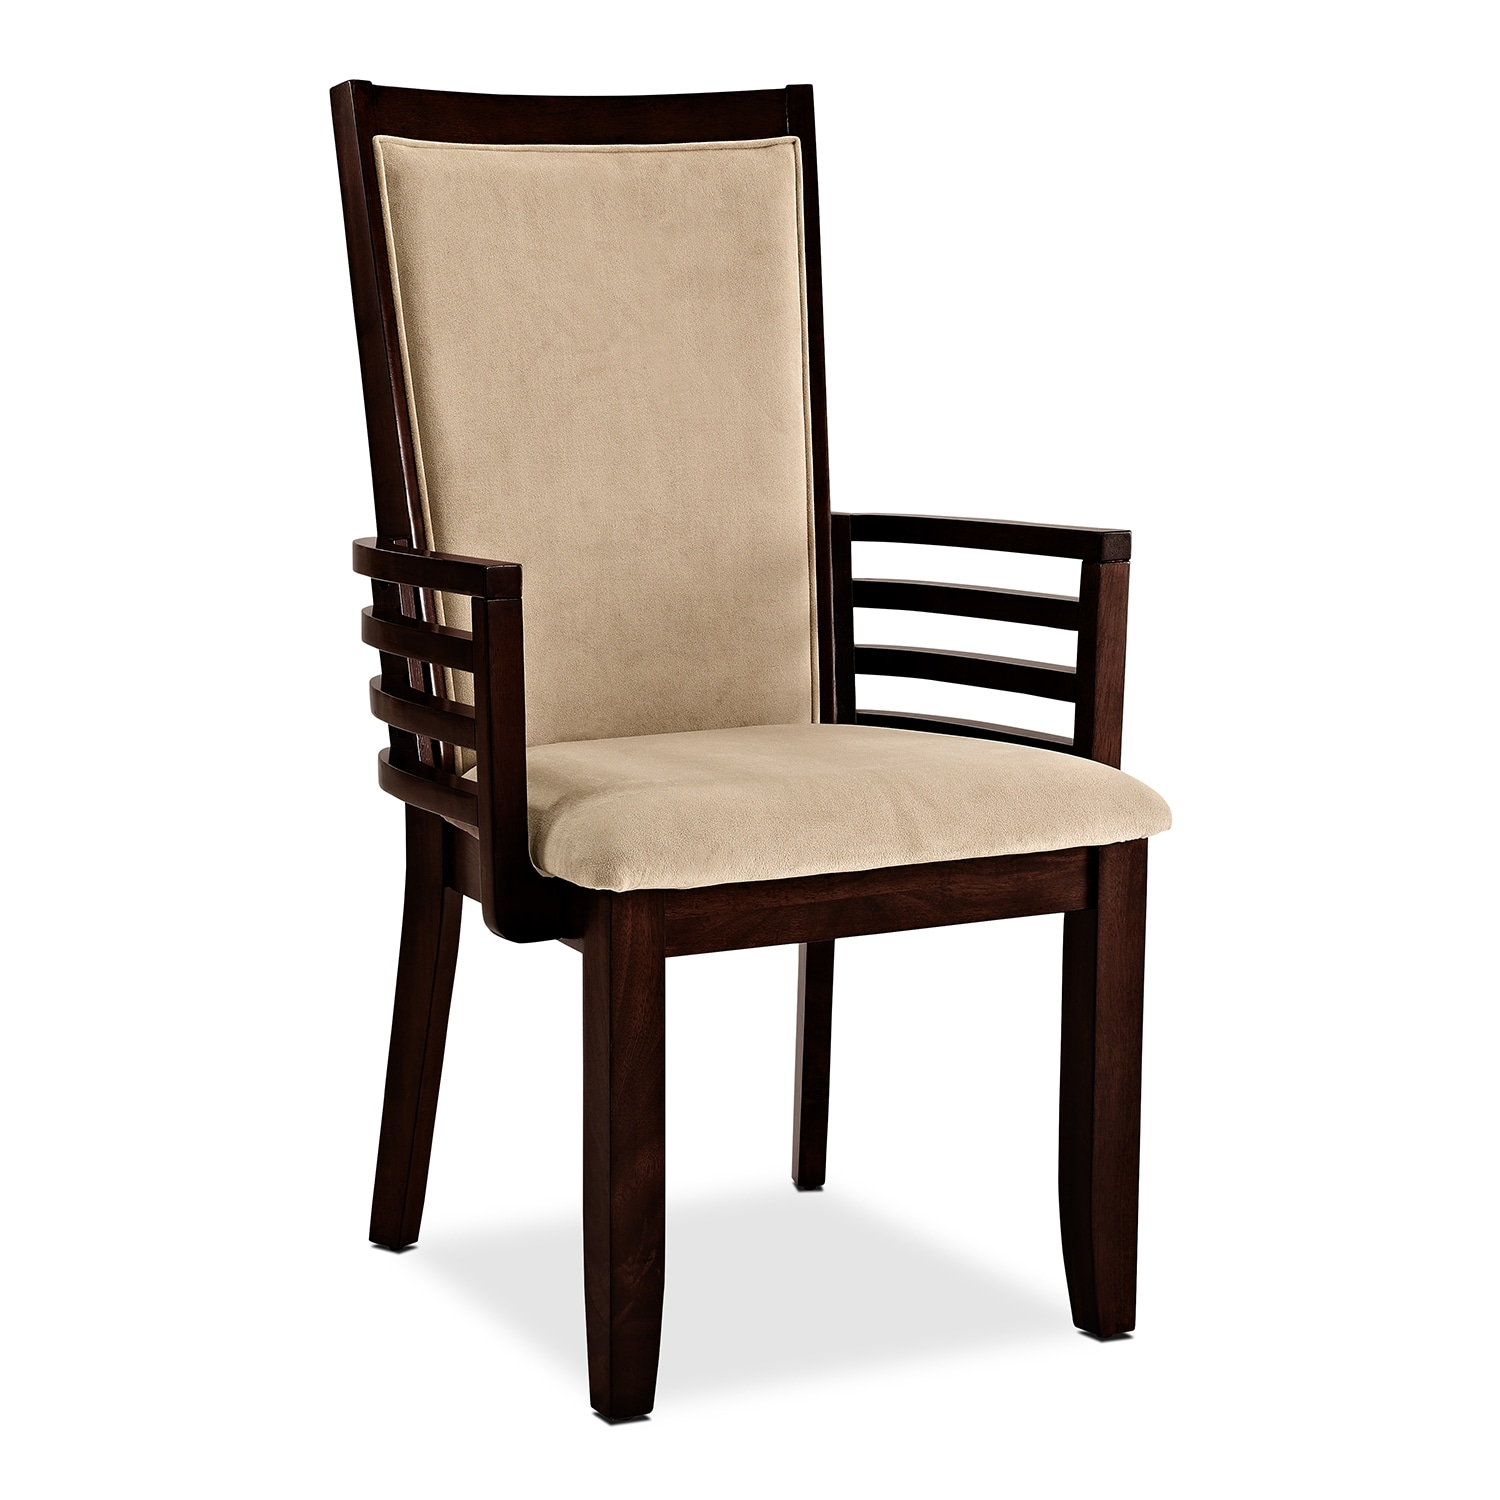 American signature furniture paragon dining room arm chair - Dining room chairs used ...